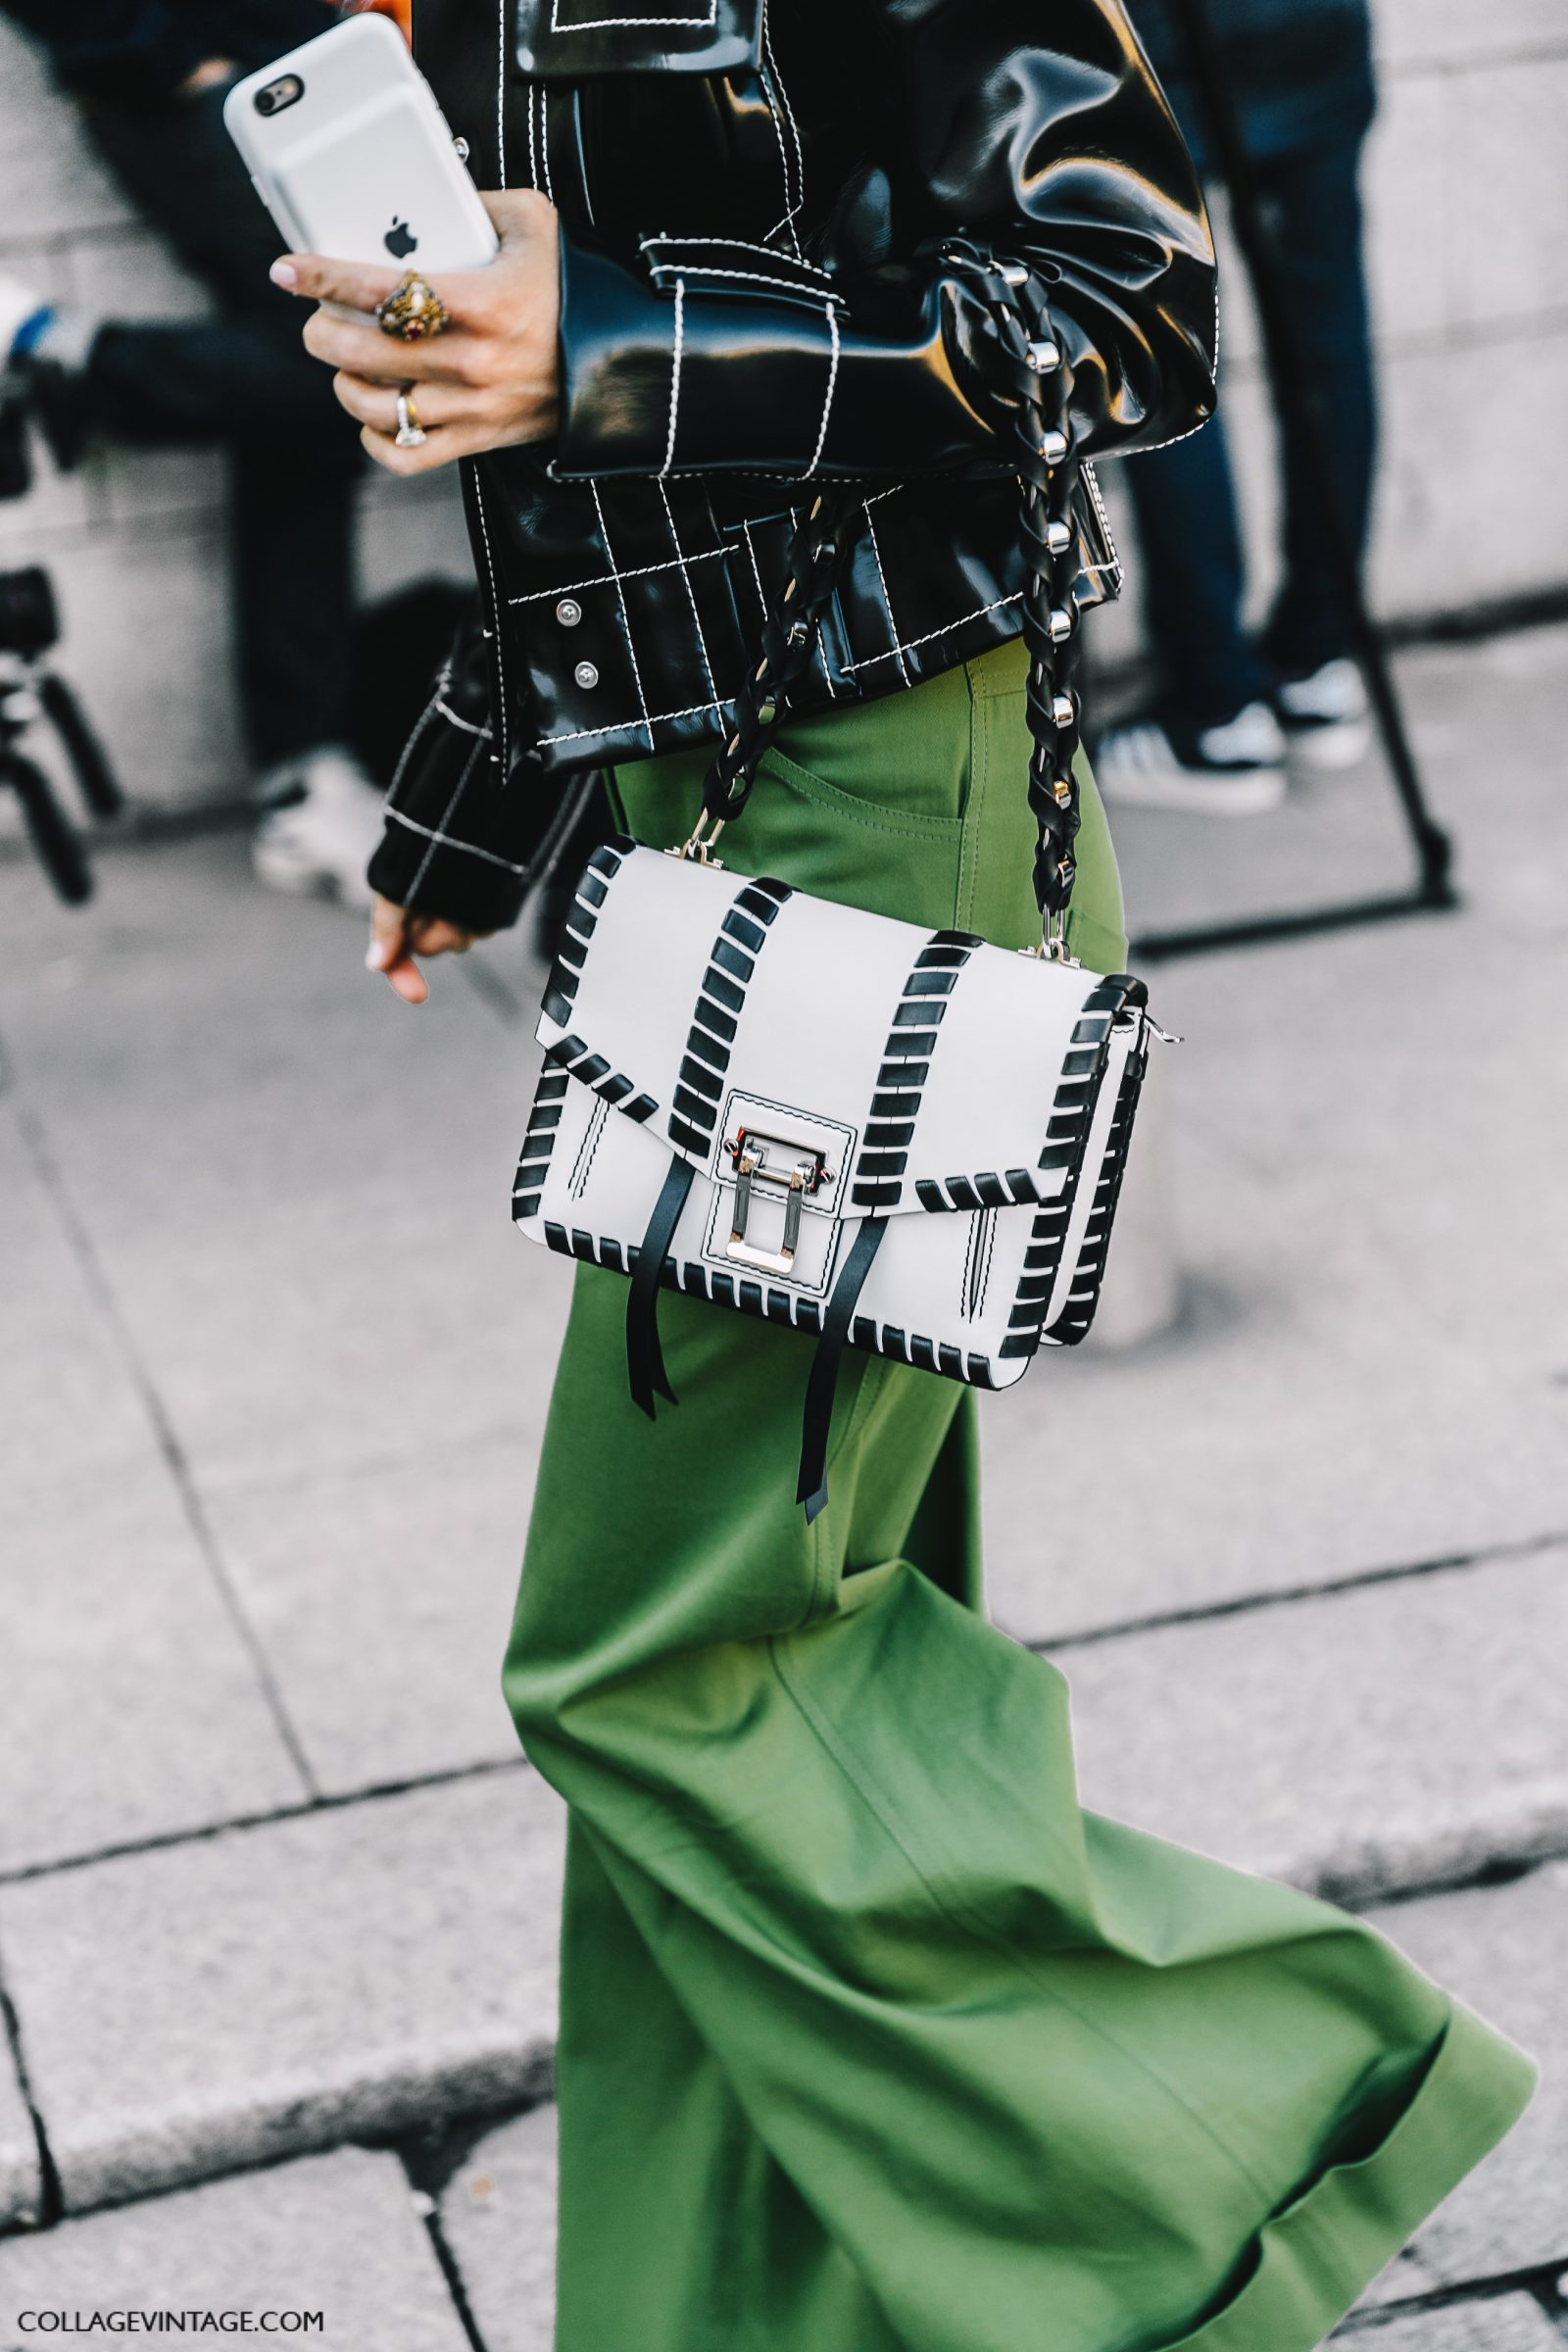 pfw-paris_fashion_week_ss17-street_style-outfit-collage_vintage-louis_vuitton-miu_miu-2